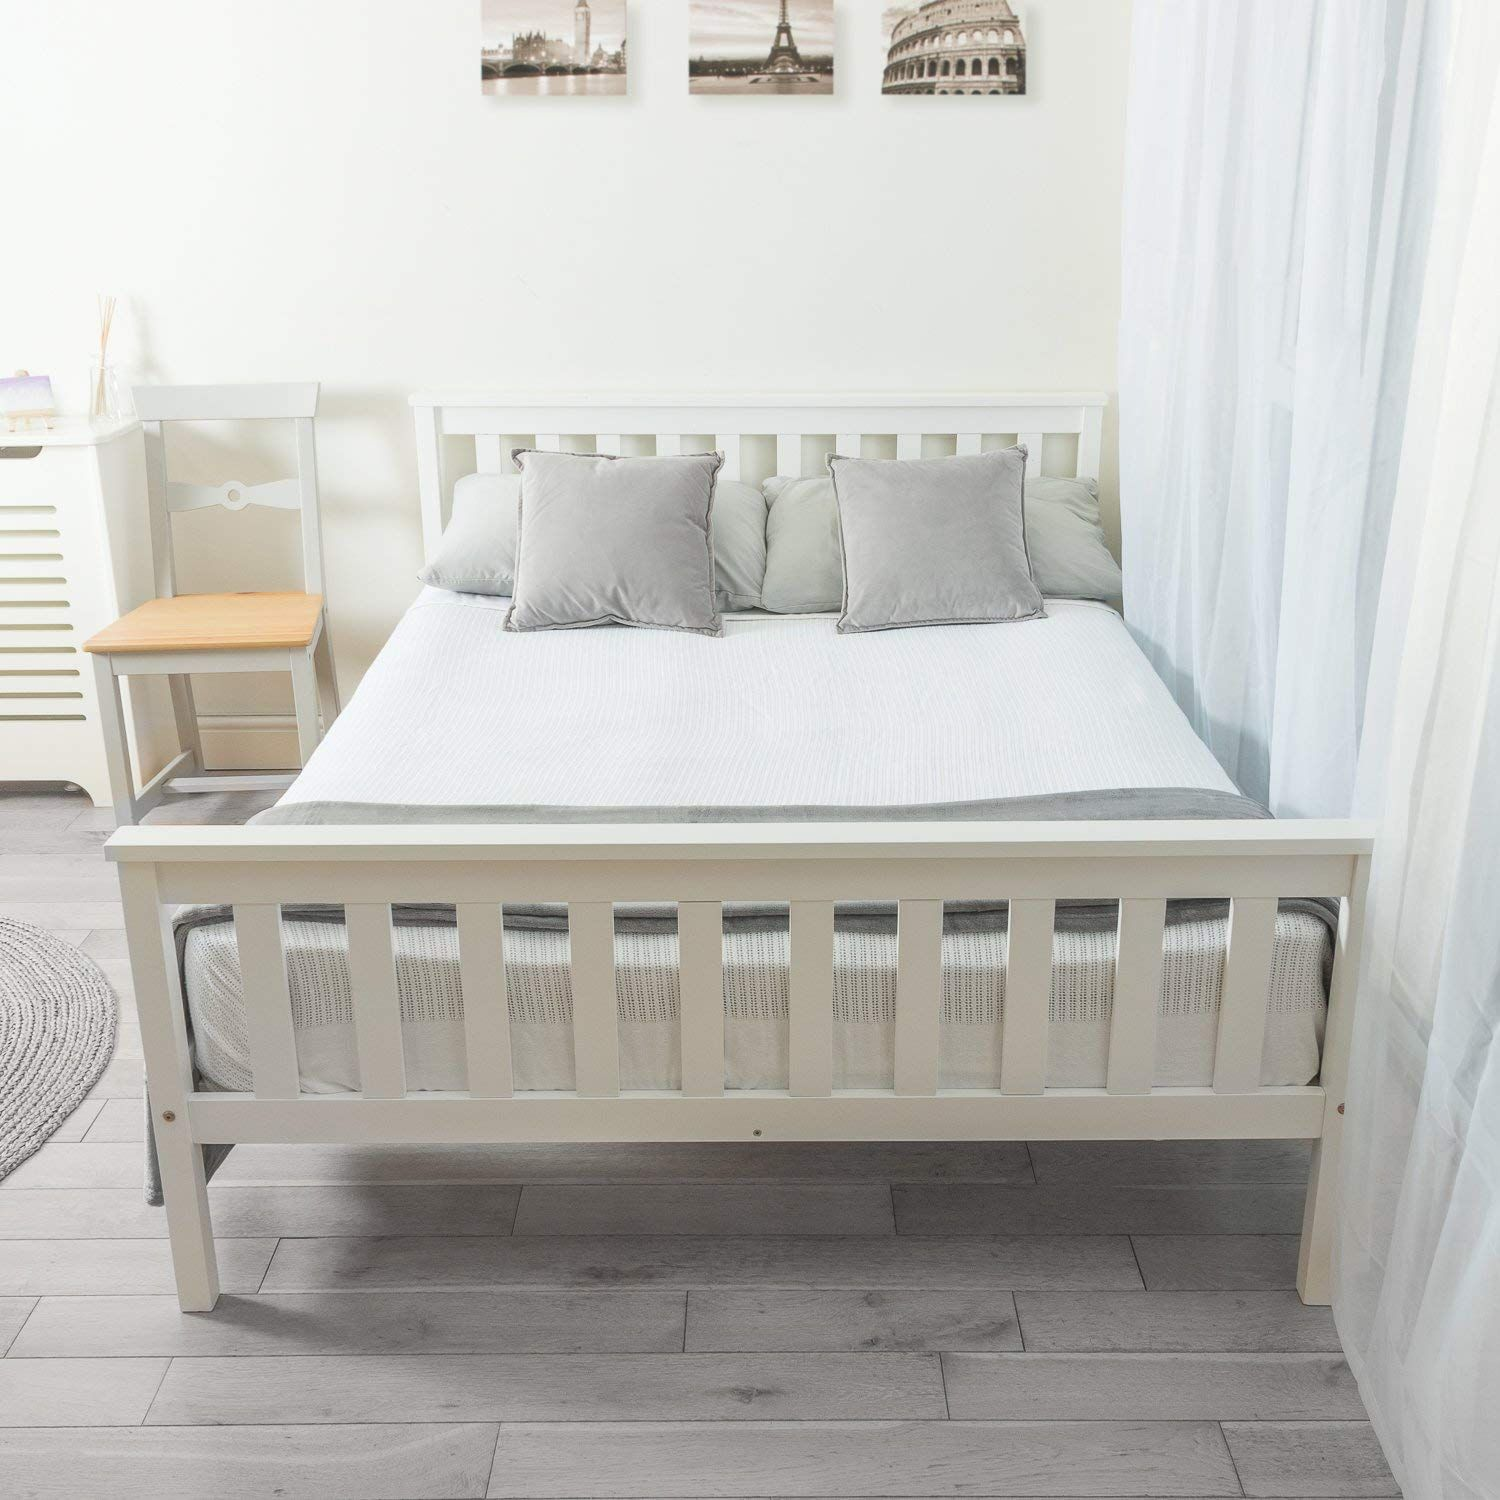 Home Treats Double Bed In White 4 6ft Solid Wooden Frame Perfect For Adults Kids Teenagers Amazo Best Bed